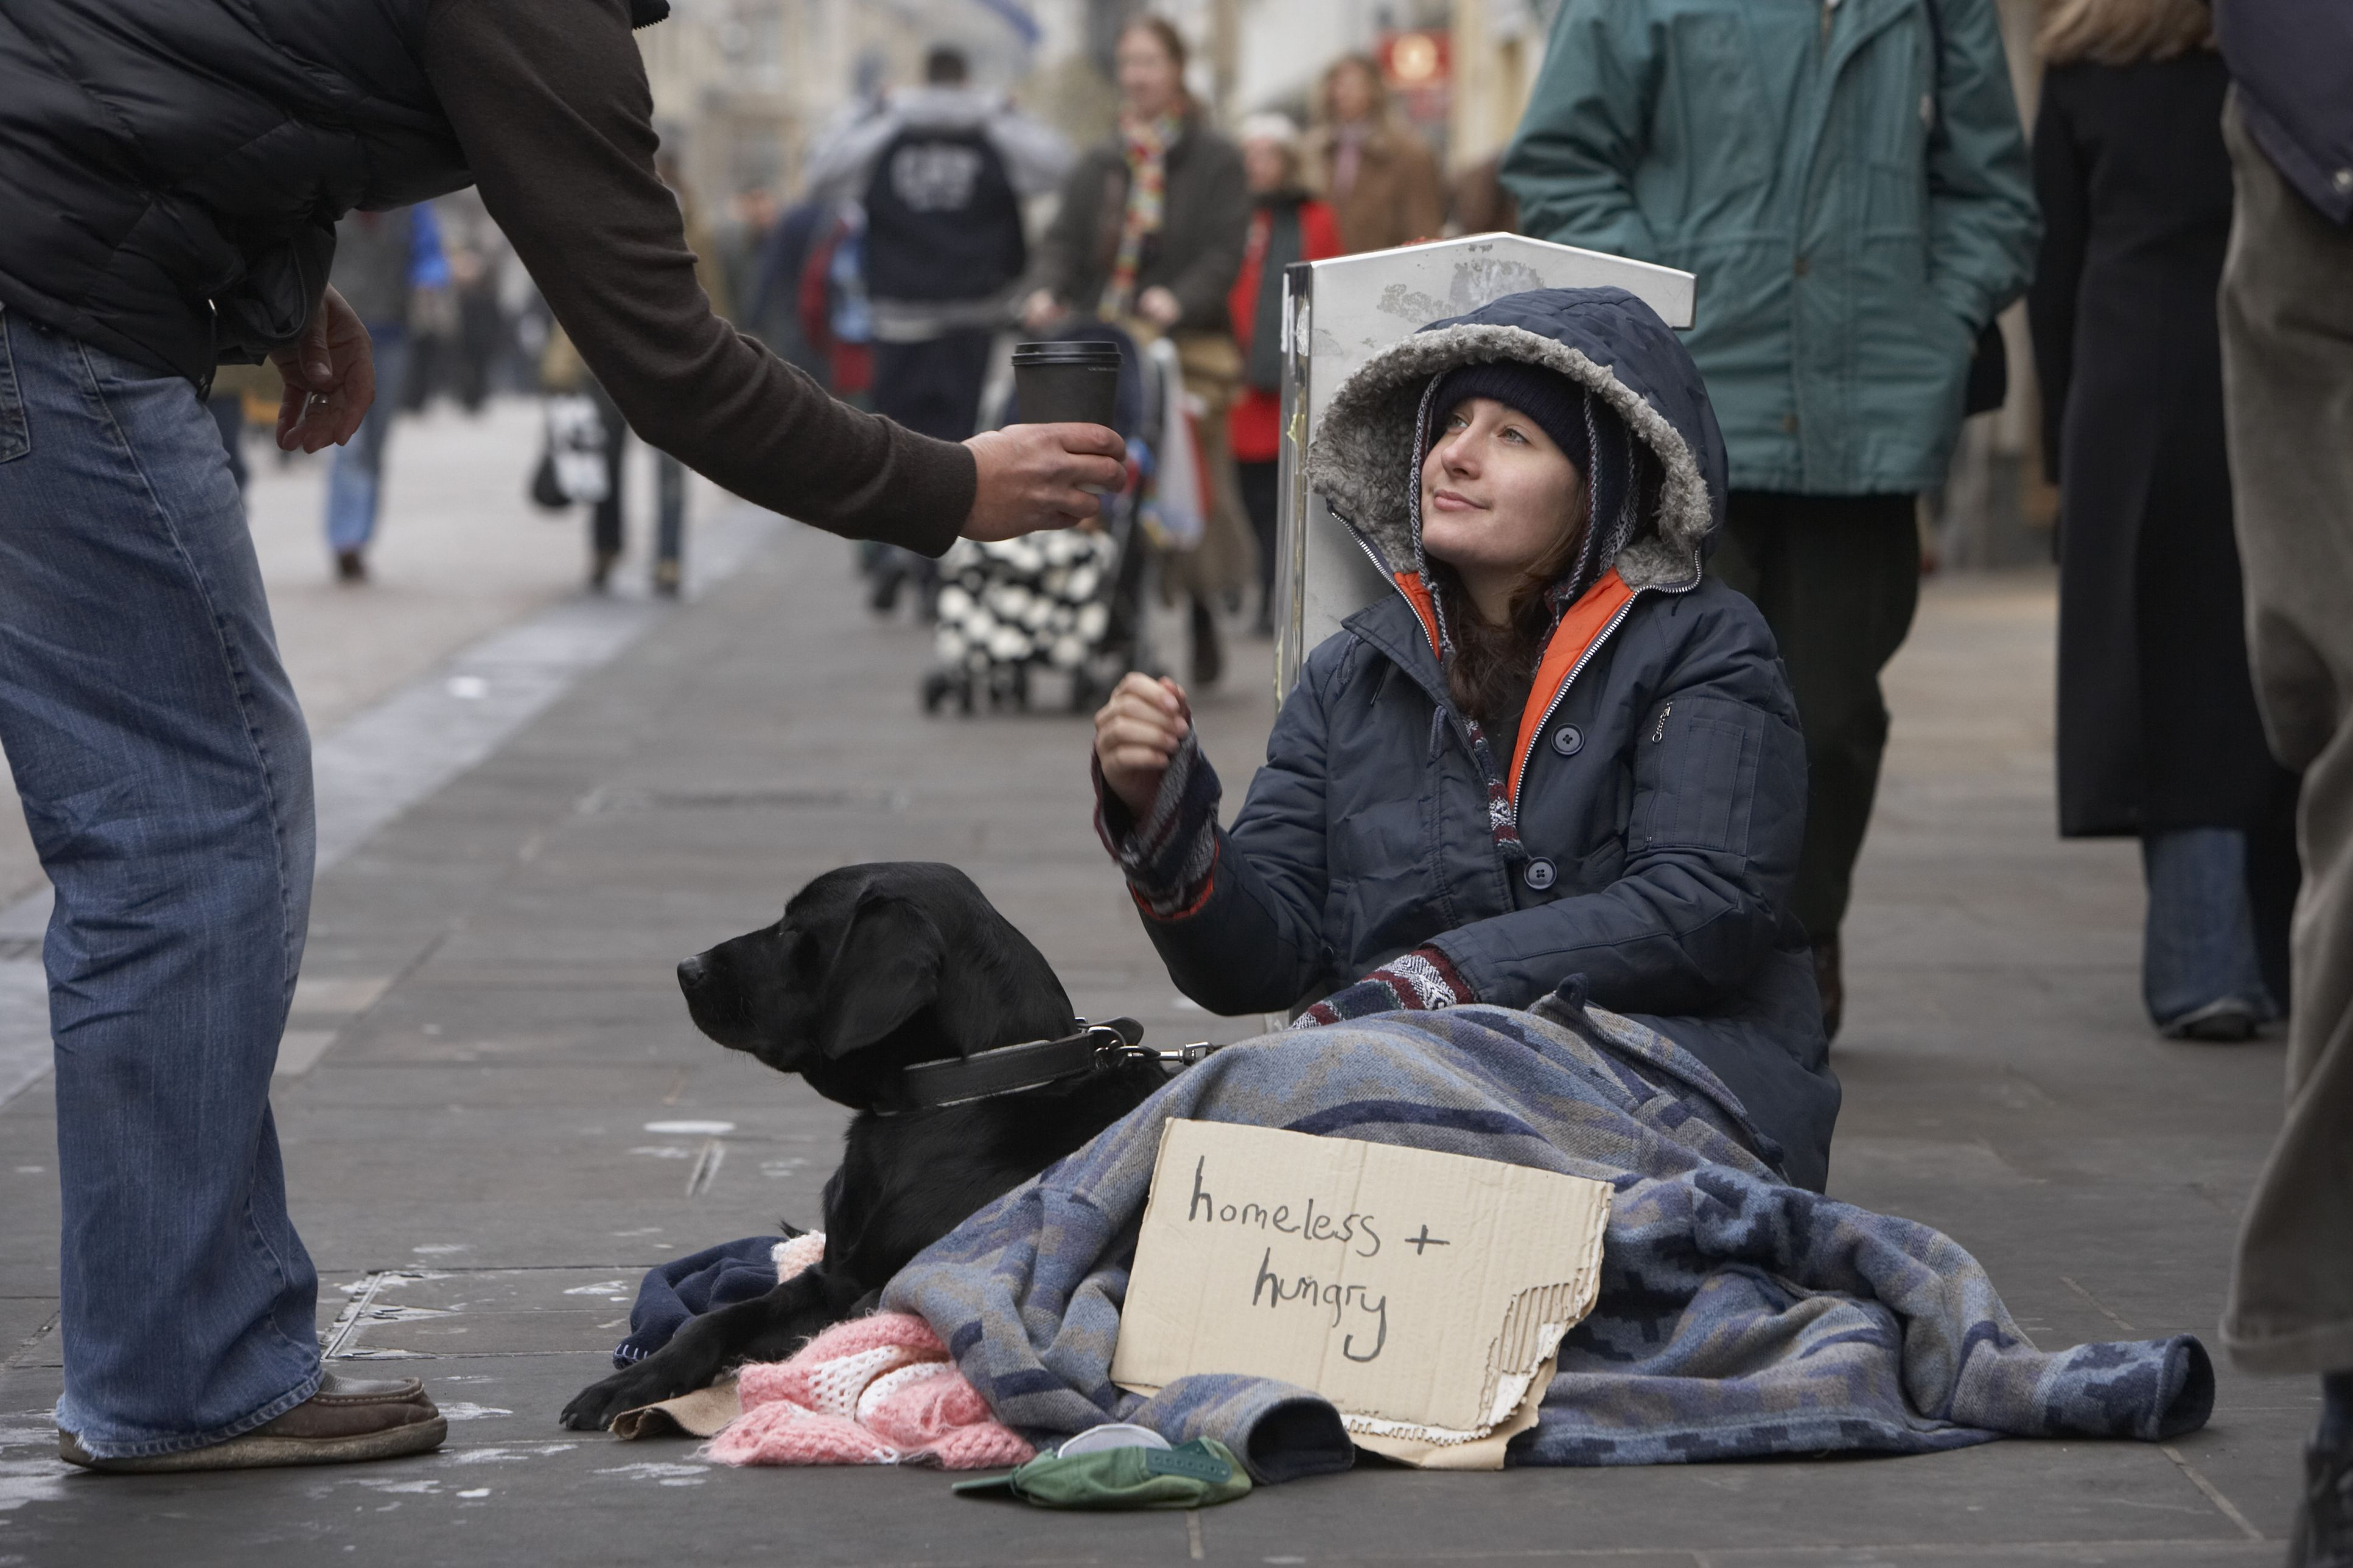 homeless people more likely to become A fifth of all homeless people have committed a crime to get off the streets.